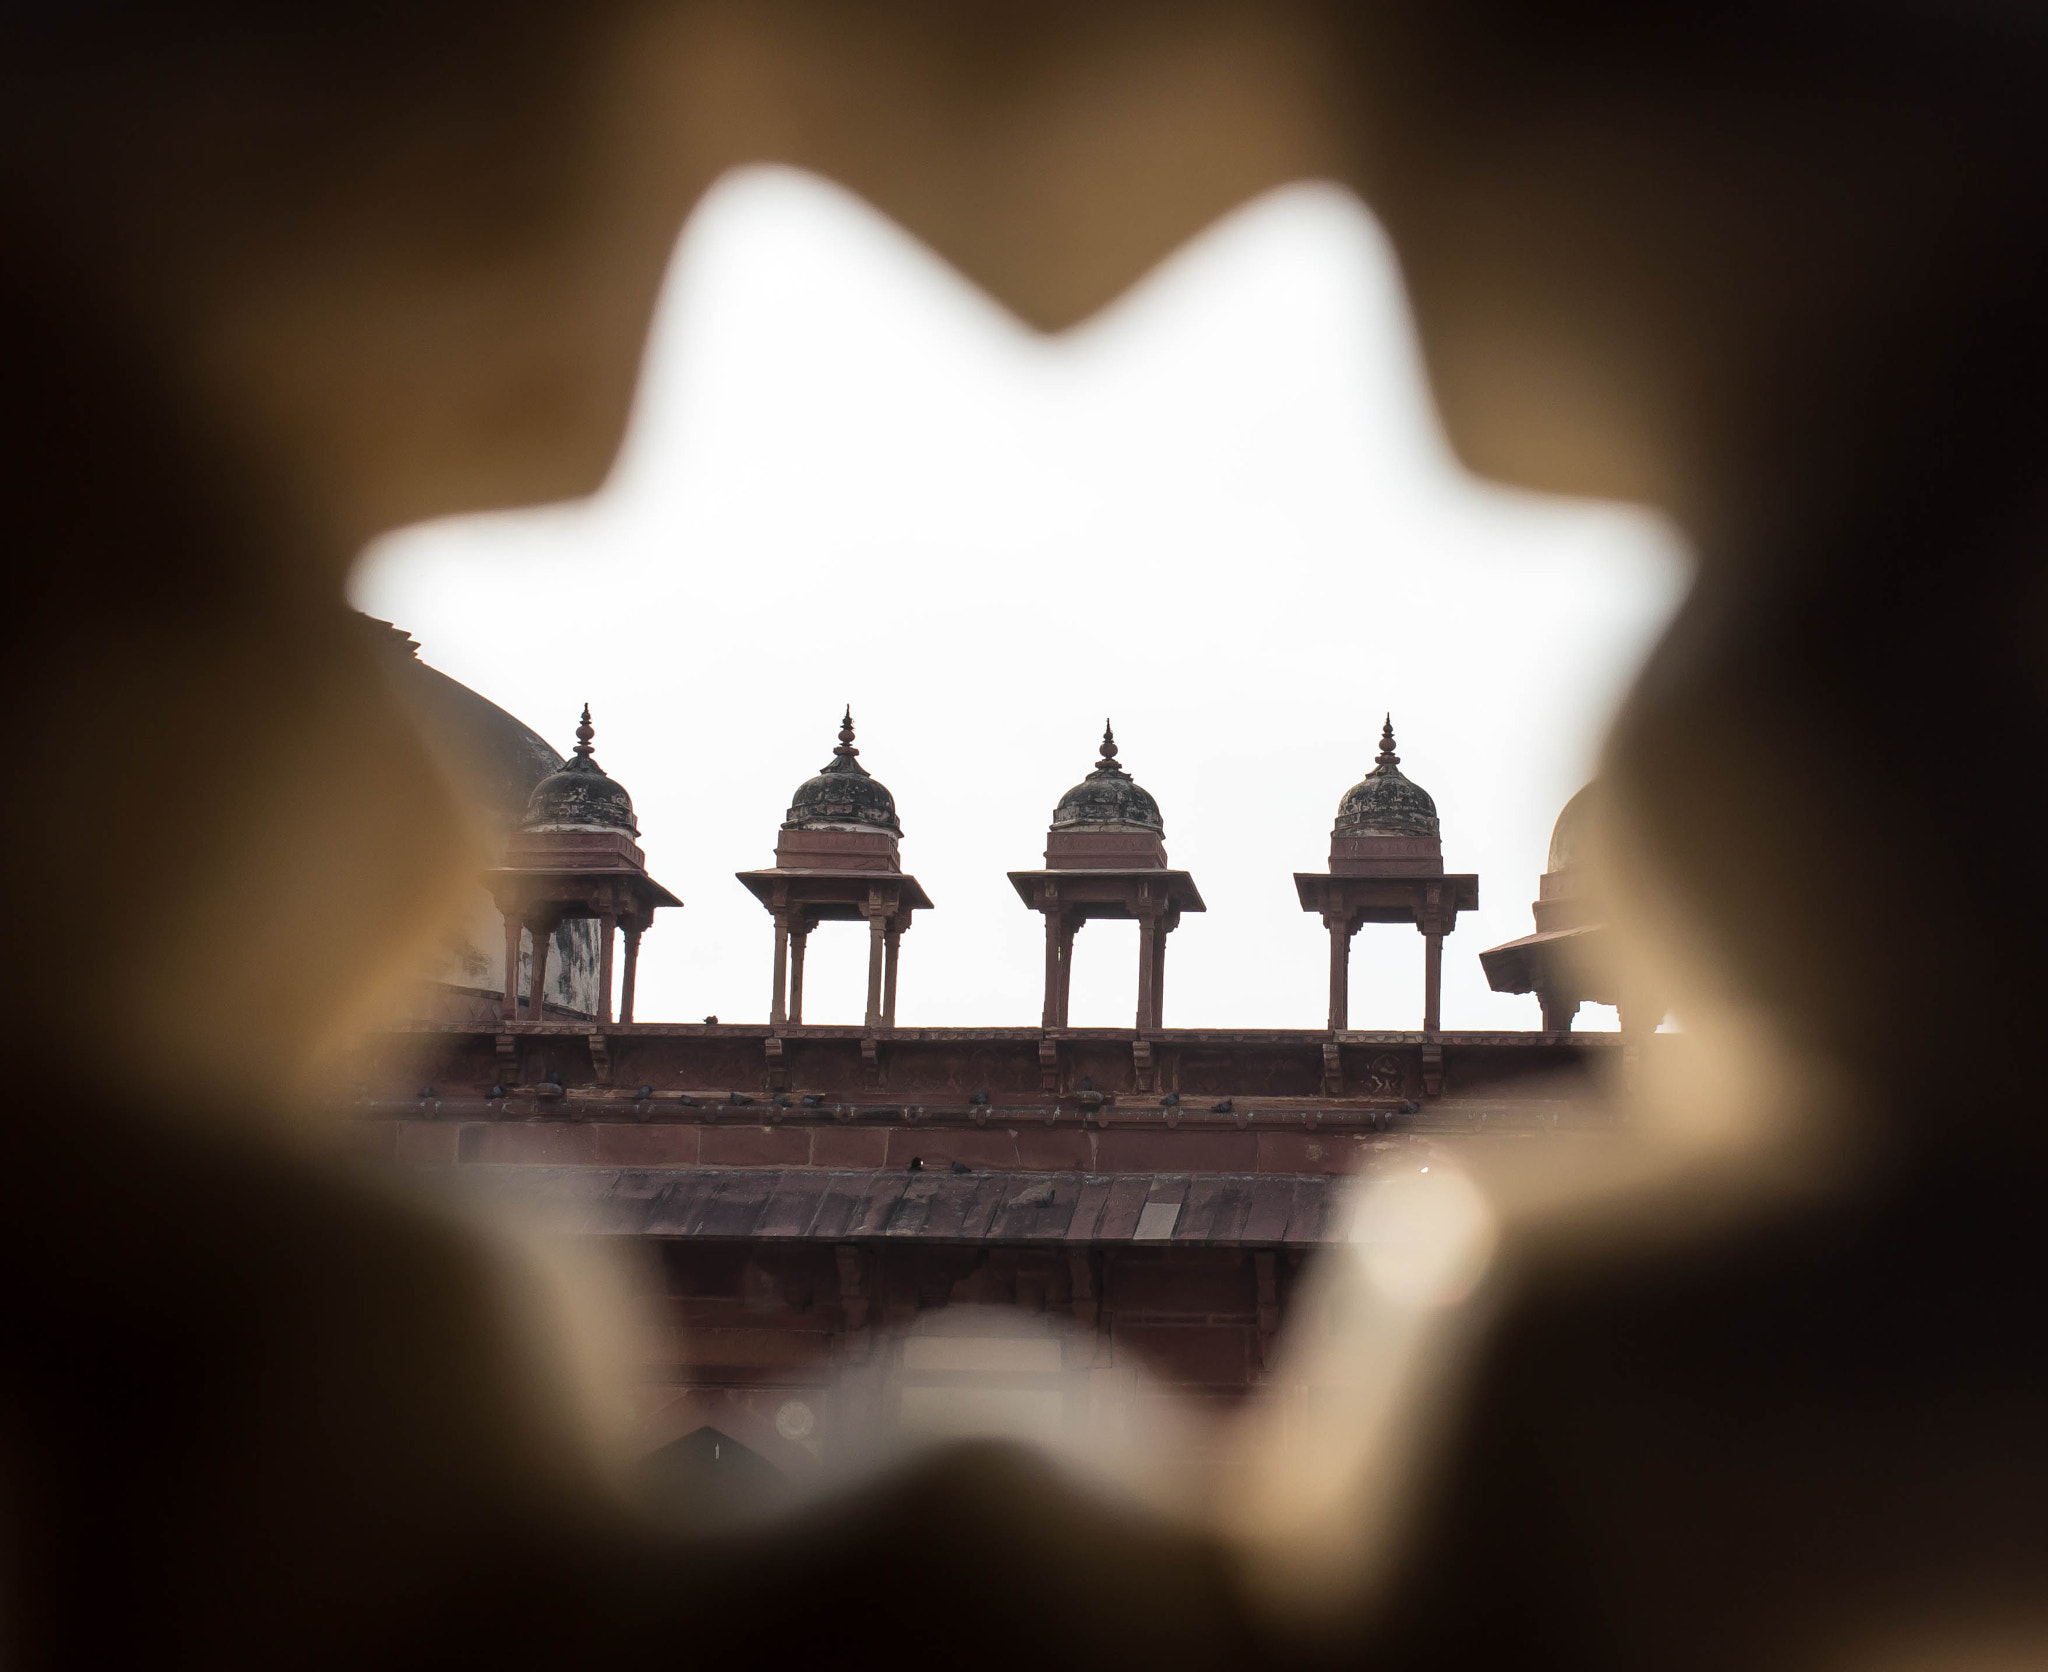 Photograph View from the Dargah by Di Shirodkar on 500px